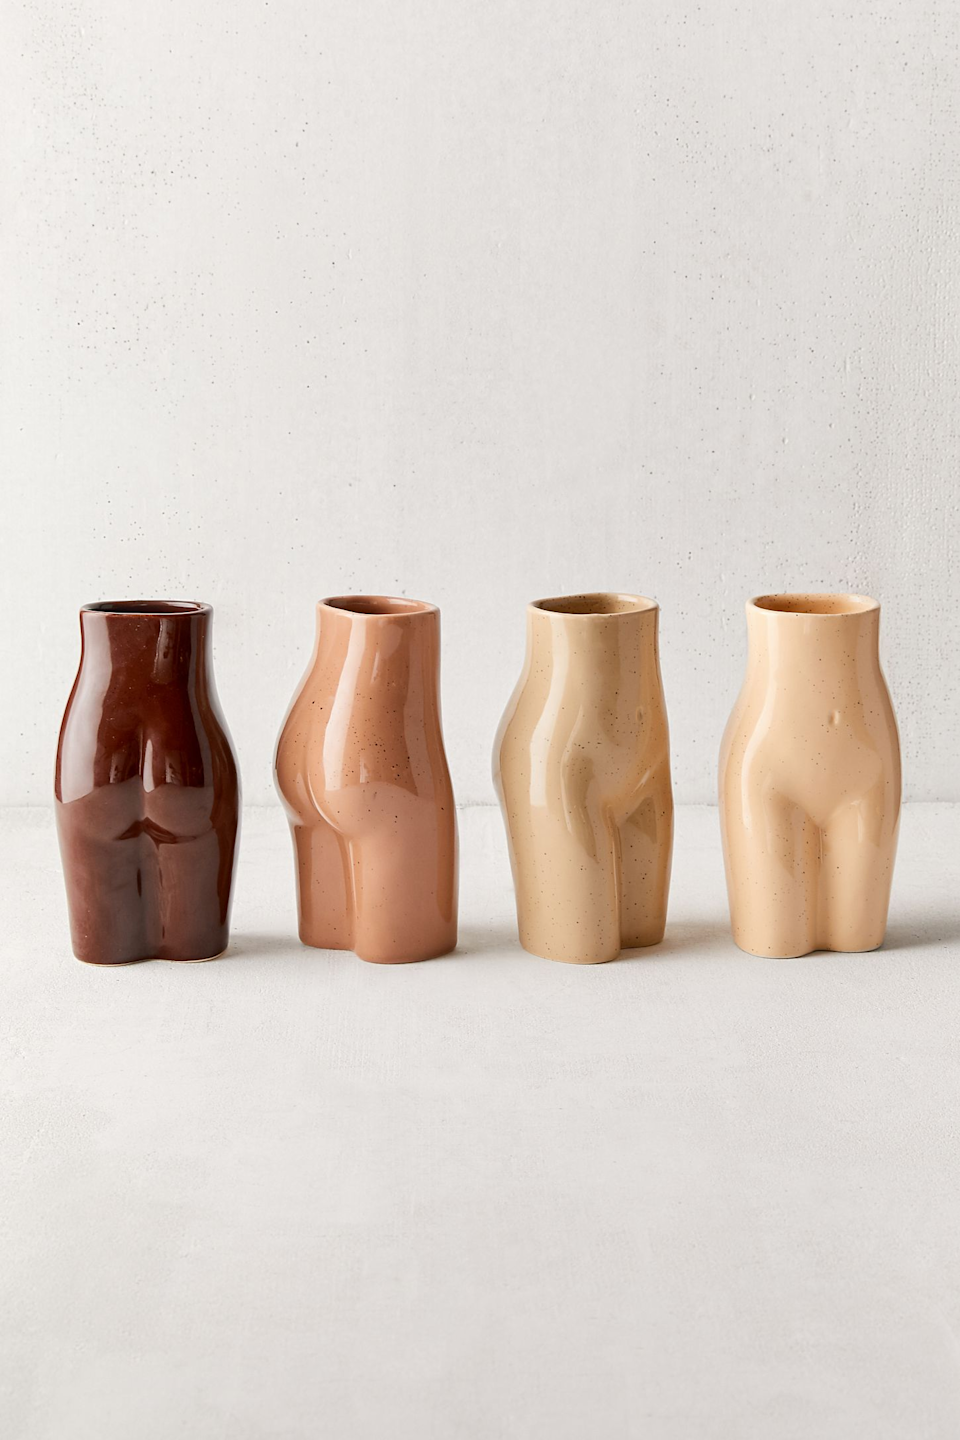 "One for every friend in your group.<br><br><strong>Urban Outfitters</strong> Female Form Vase, $, available at <a href=""https://go.skimresources.com/?id=30283X879131&url=https%3A%2F%2Fwww.urbanoutfitters.com%2Fshop%2Ffemale-form-vase"" rel=""nofollow noopener"" target=""_blank"" data-ylk=""slk:Urban Outfitters"" class=""link rapid-noclick-resp"">Urban Outfitters</a><span class=""copyright"">Photo Courtesy of Urban Outfitters.</span>"